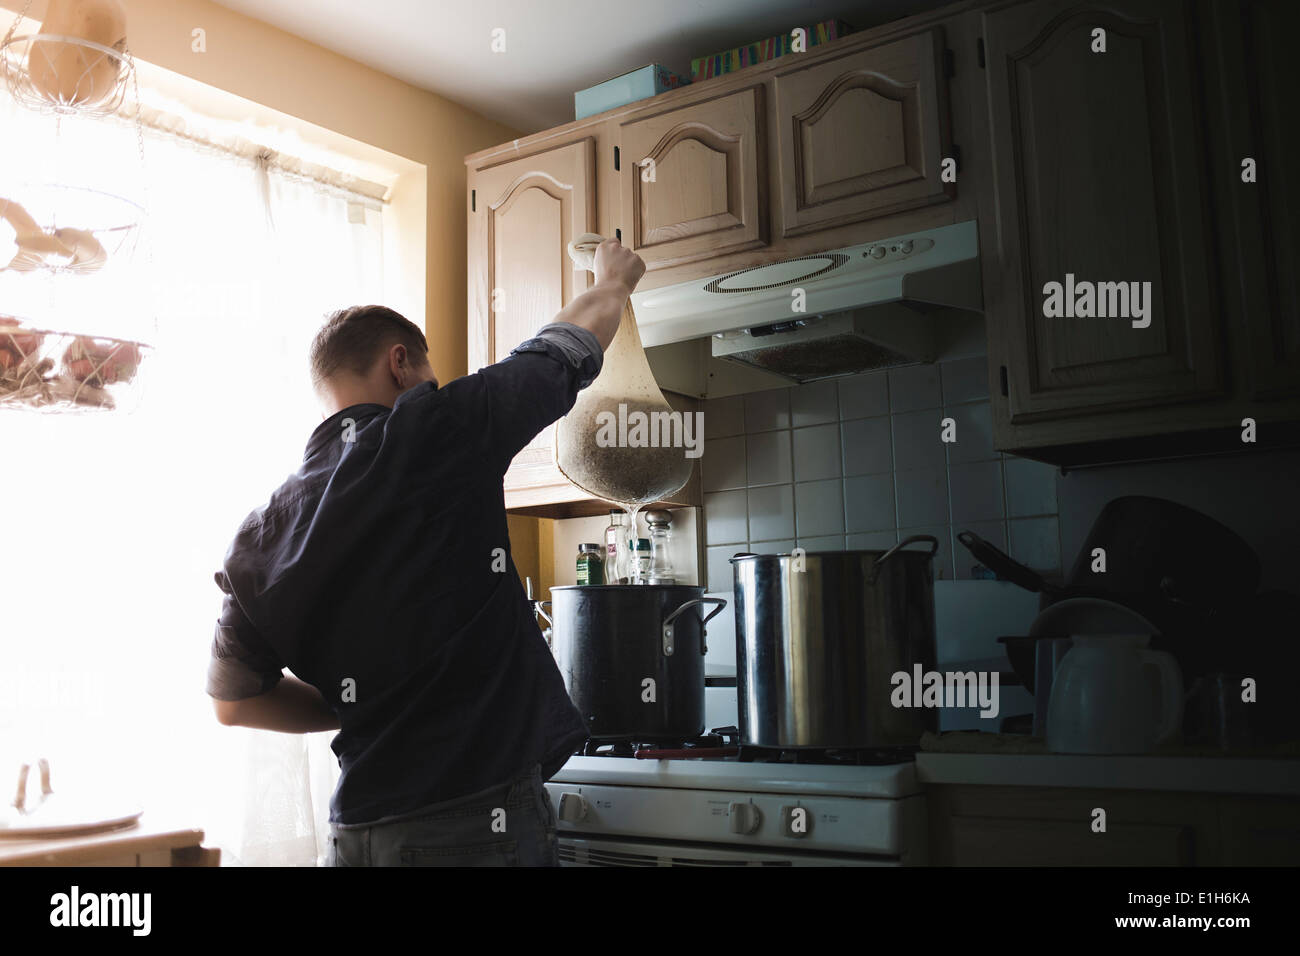 Mid adult man holding up seeping bag for home brew beer - Stock Image